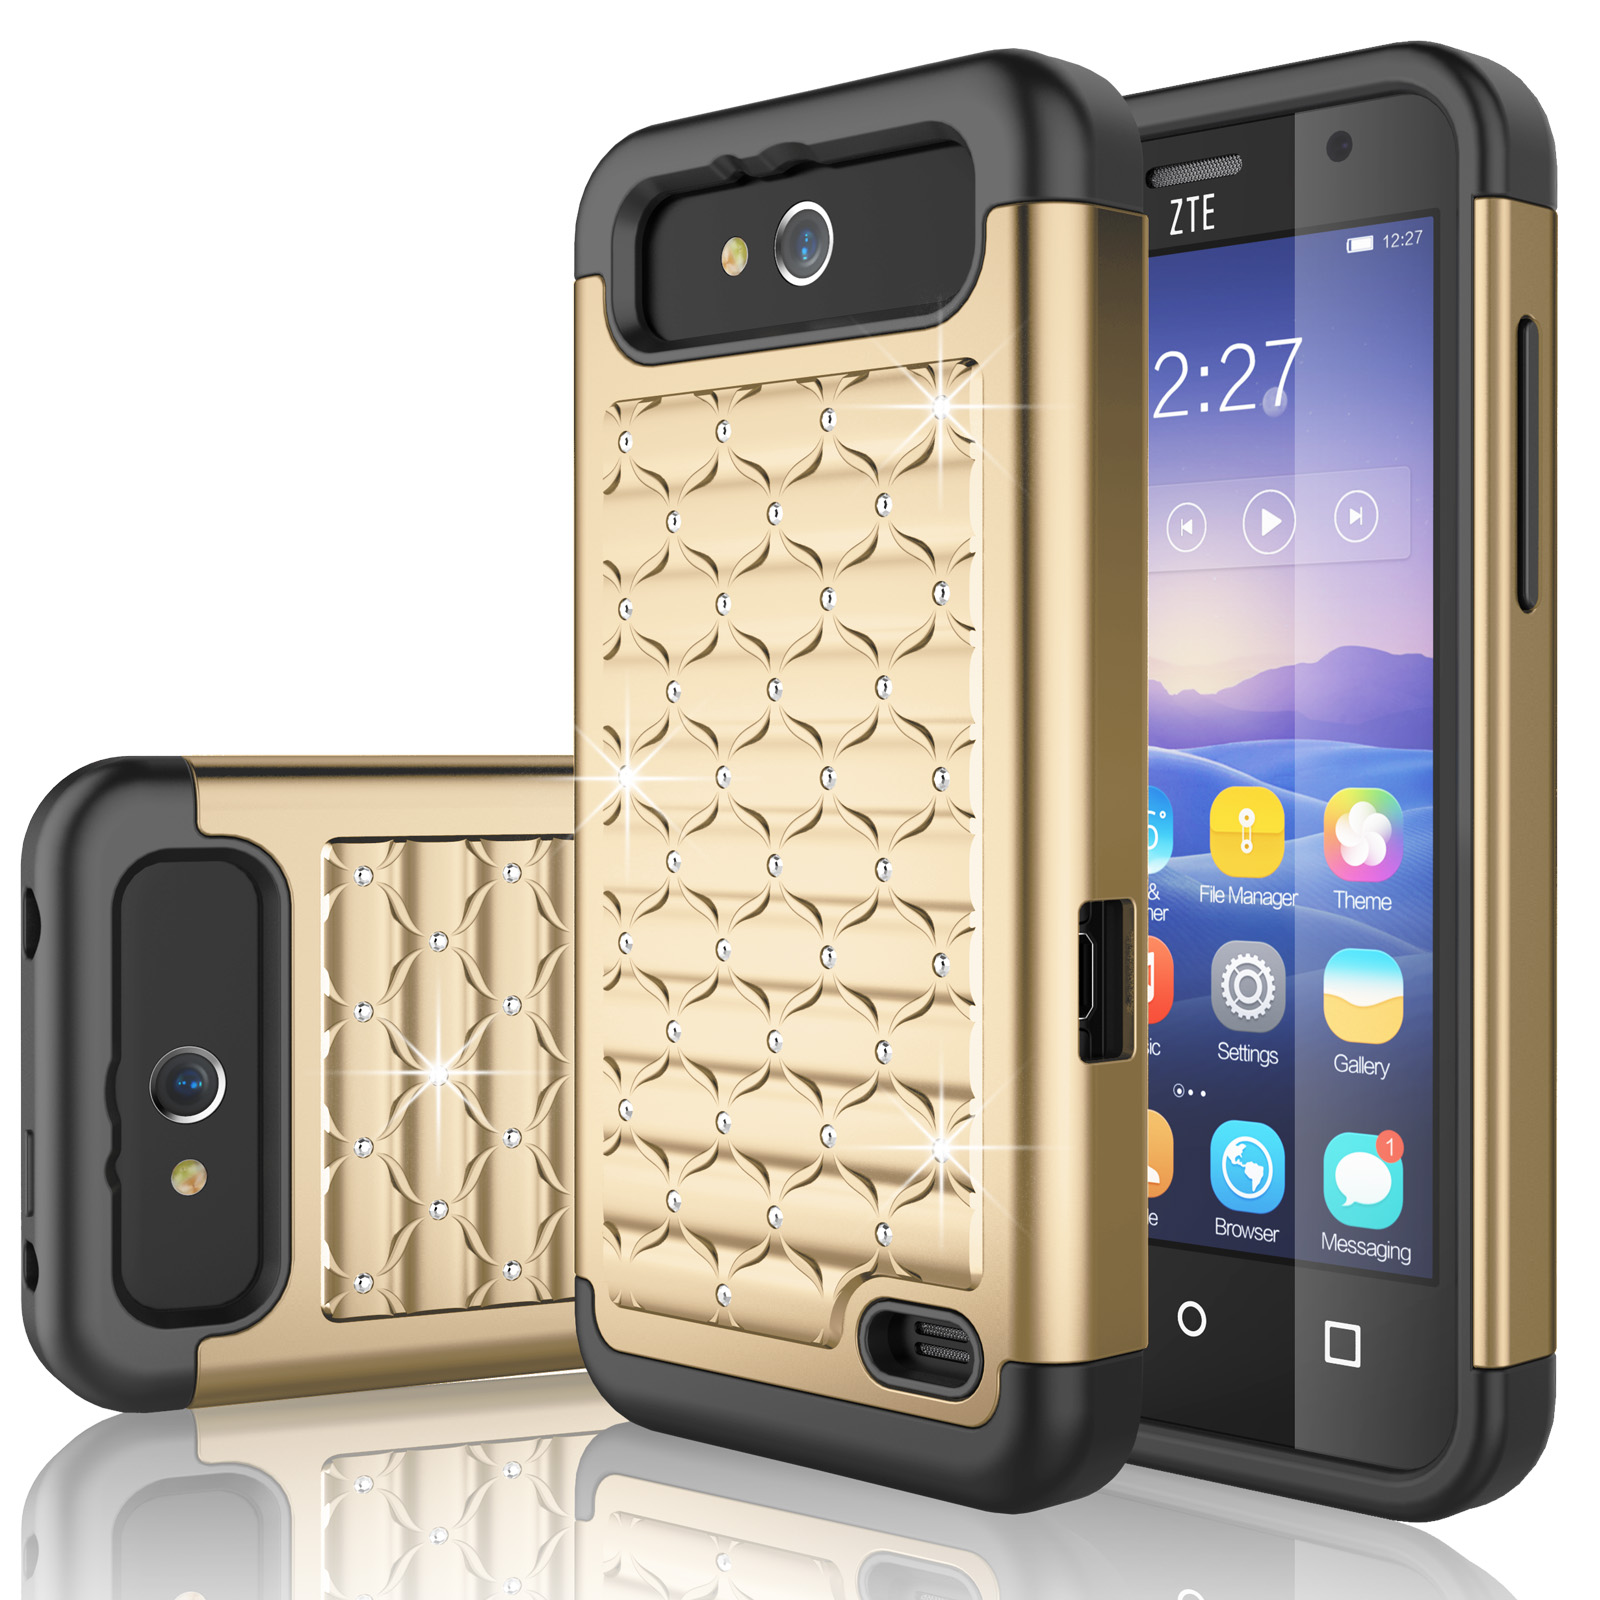 ZTE Maven Case, ZTE Overture 2 Case, Tekcoo® [Tstar Series] Studded Rhinestone Crystal Bling Rubber Defender Plastic Rugged Case Cover For ZTE Maven / Overture 2 / Speed / Fanfare